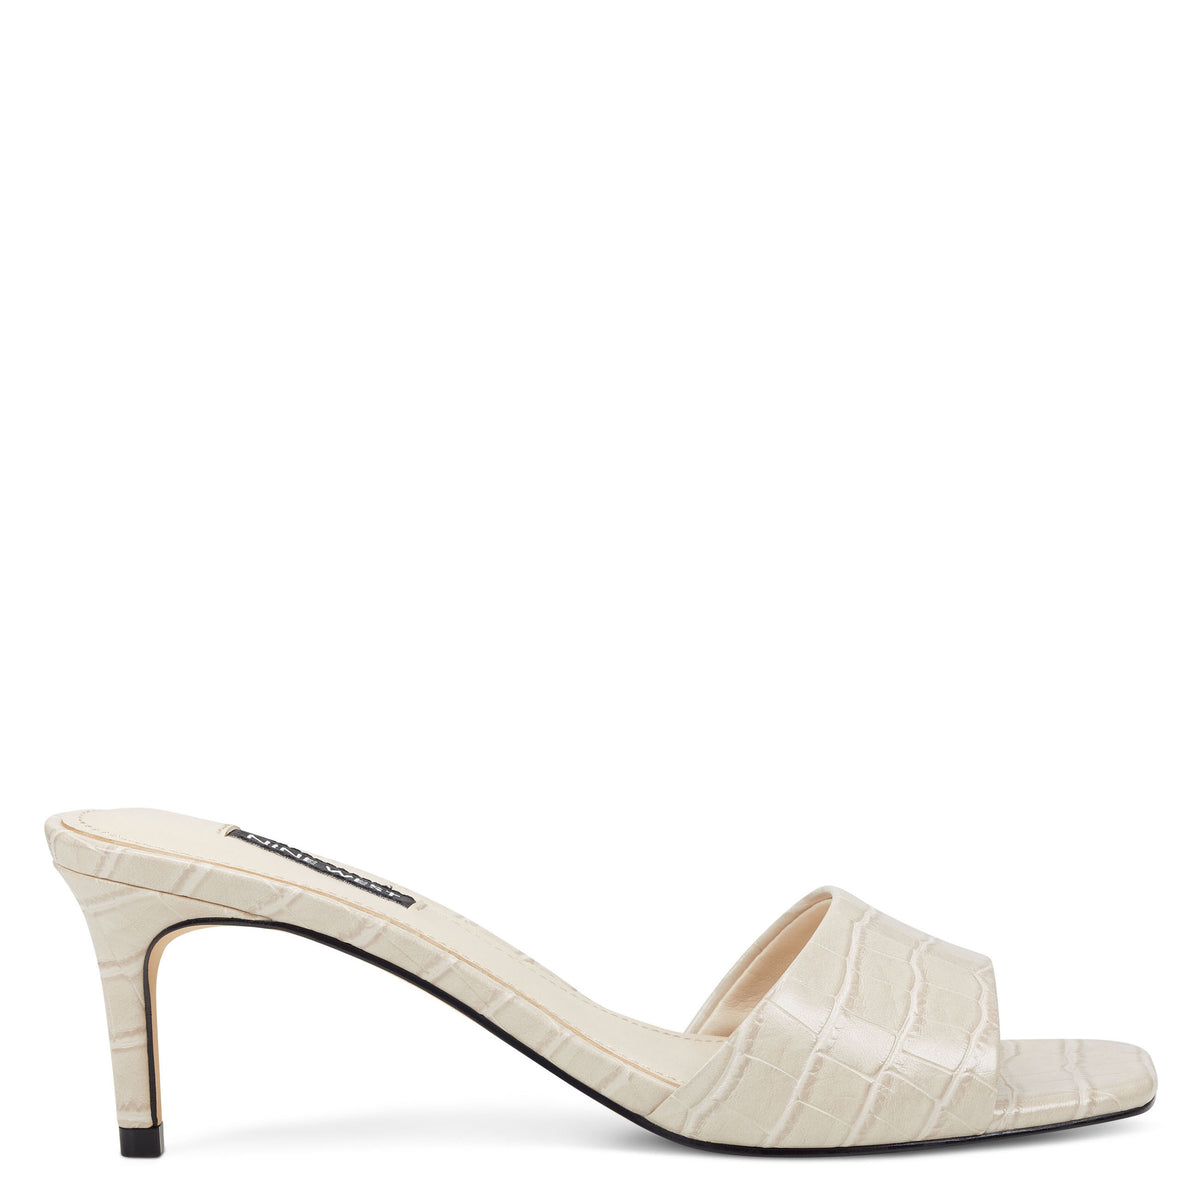 marina-heeled-slide-sandals-in-natural-embossed-croco